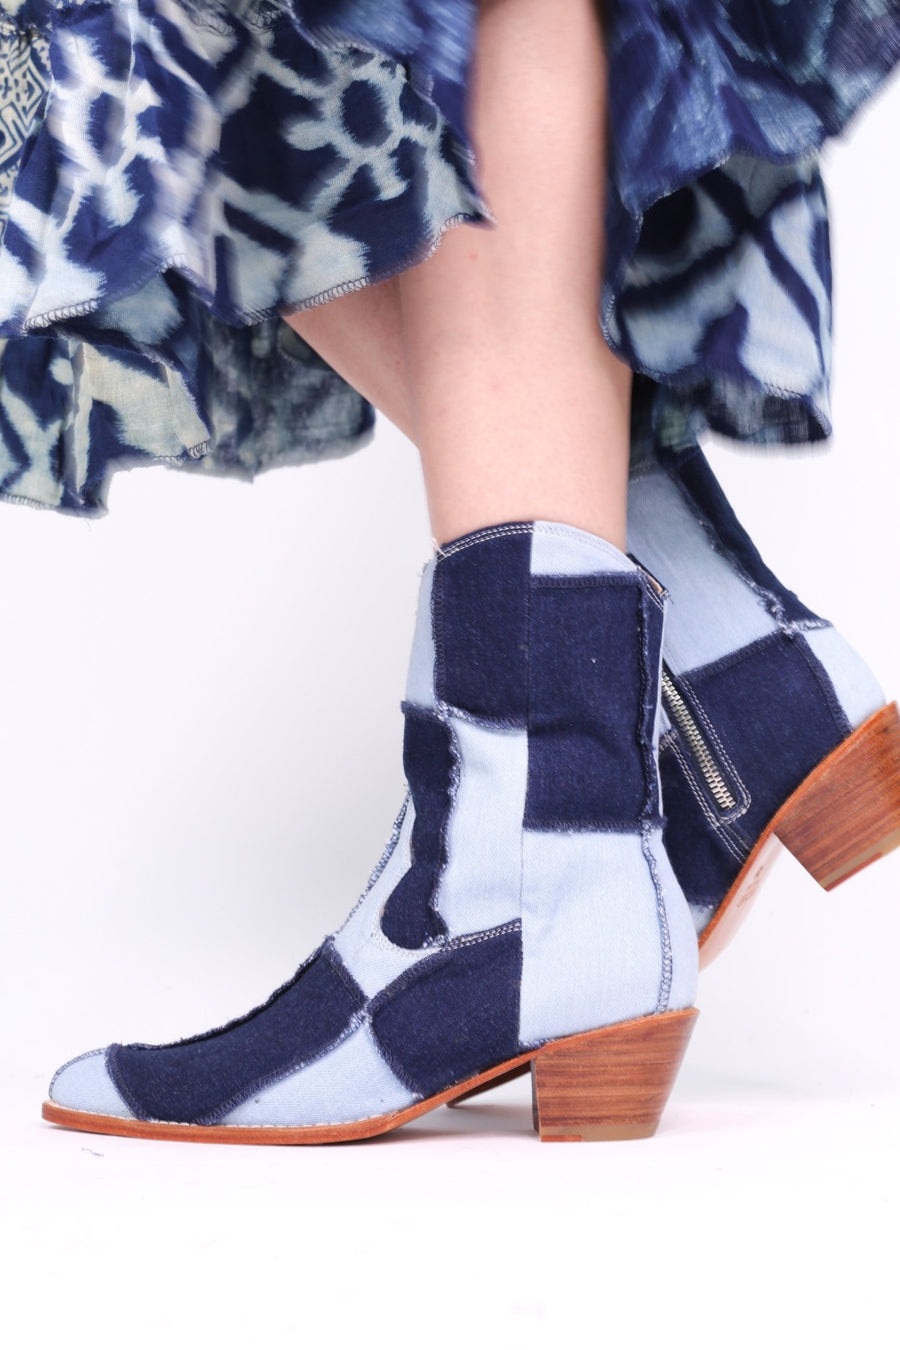 DENIM PATCHWORK BOOTS ANNIKA - MOMO NEW YORK